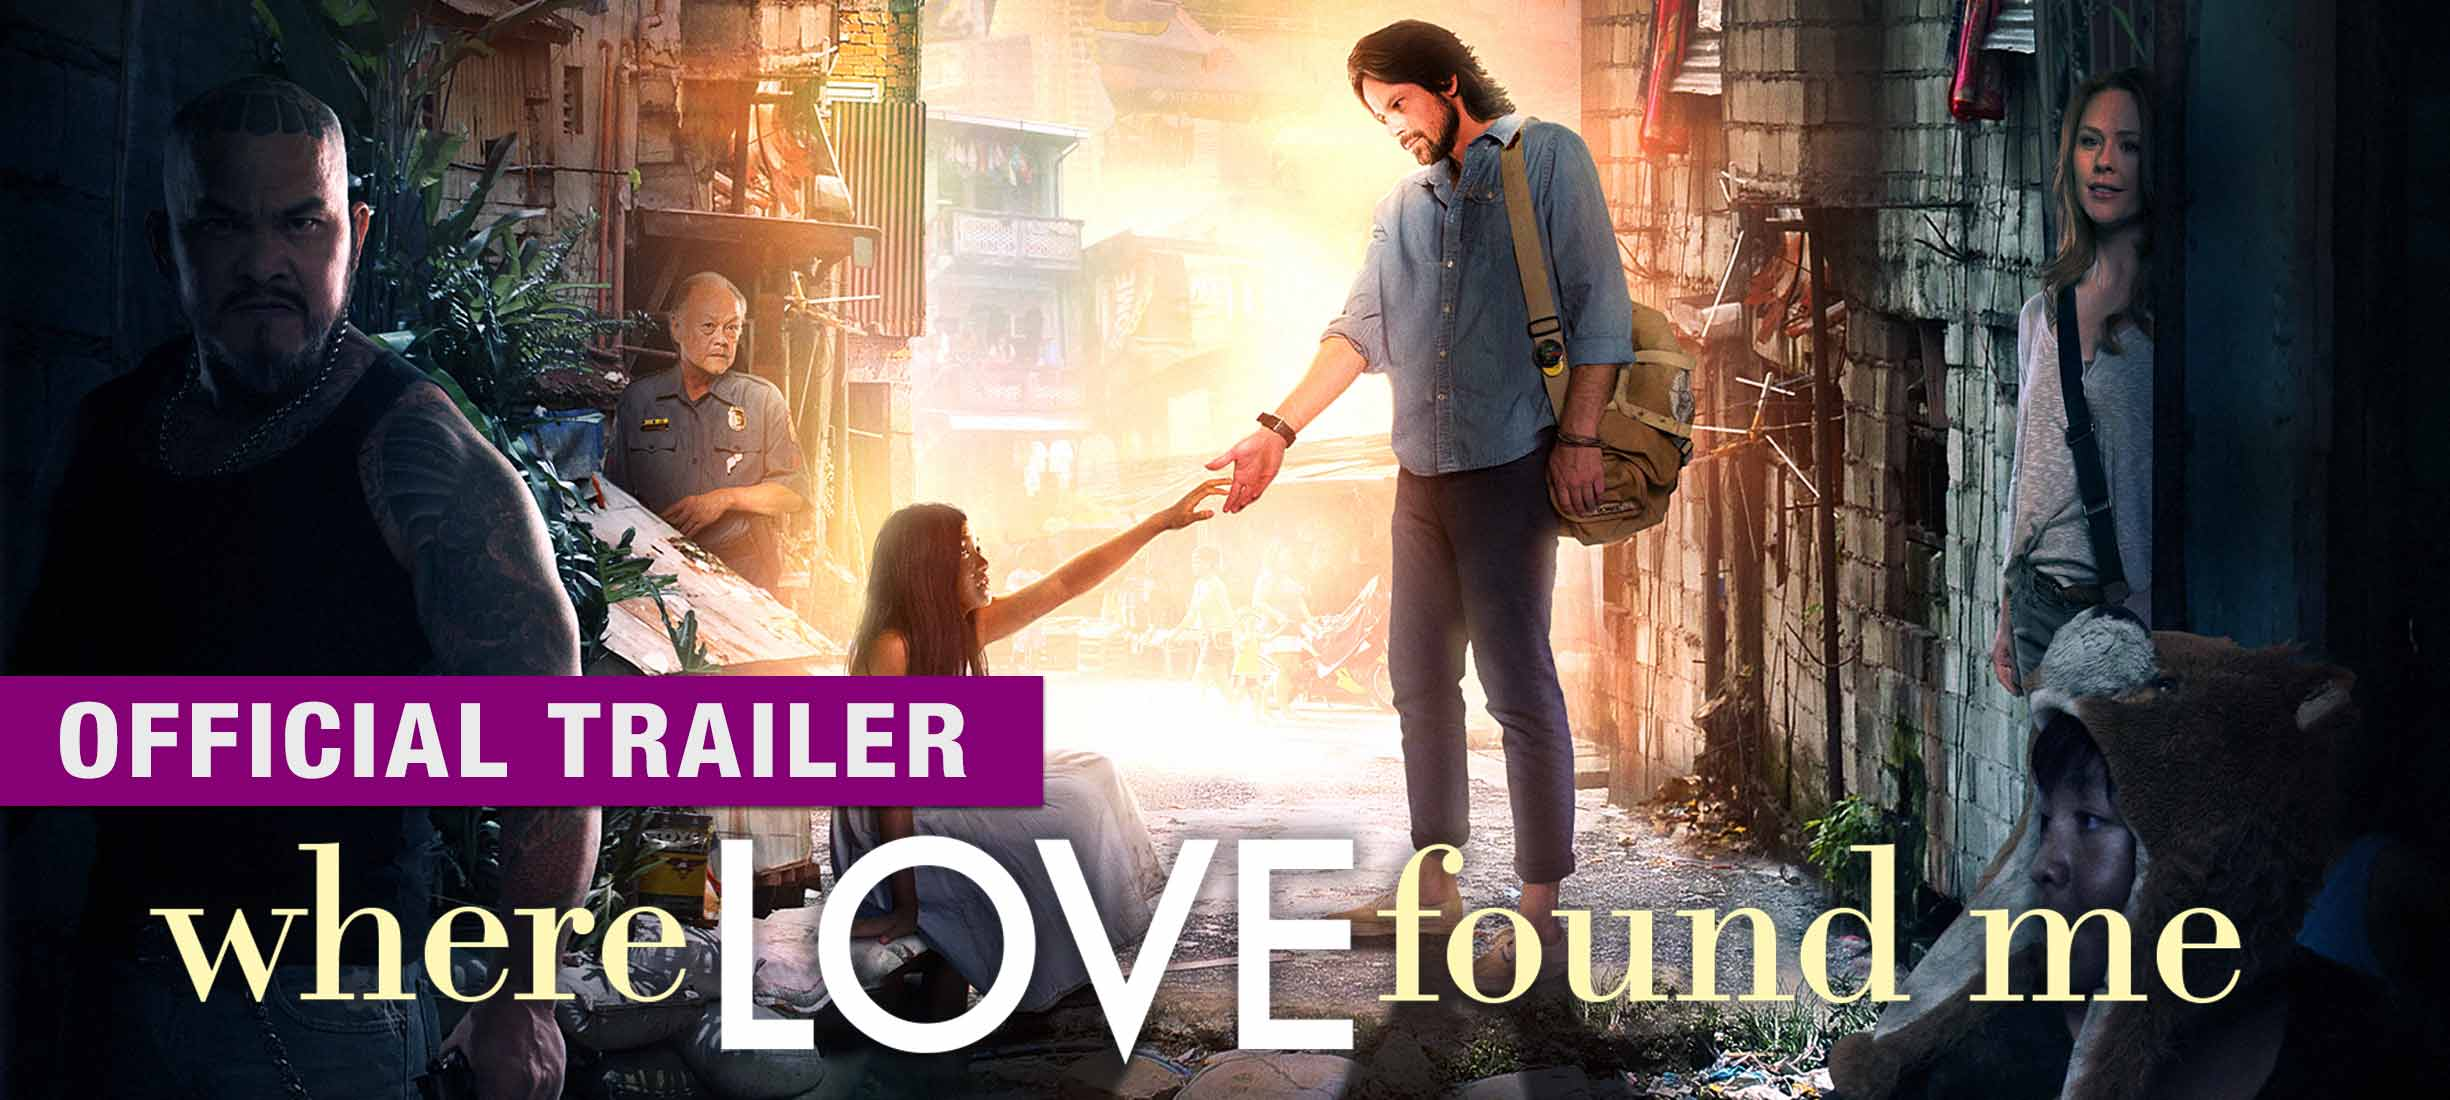 Where Love Found Me: Trailer